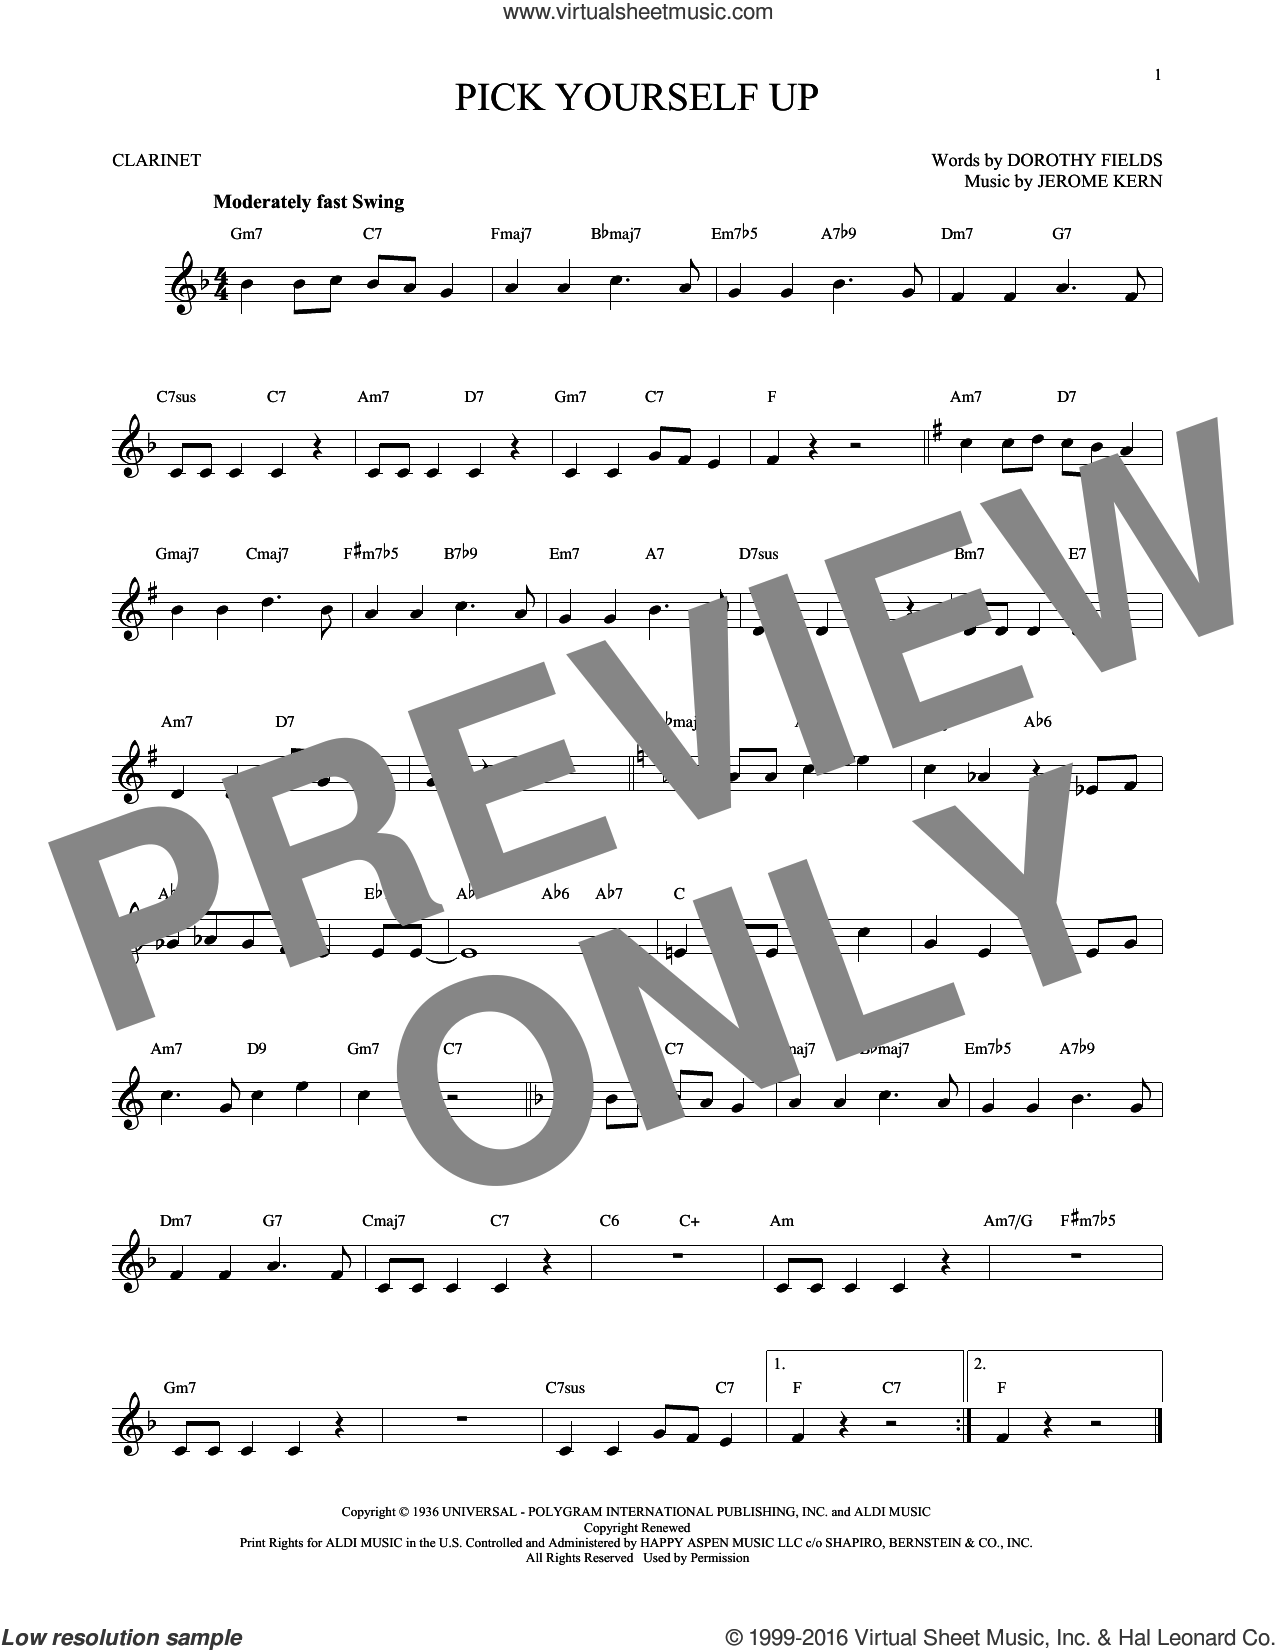 Pick Yourself Up sheet music for clarinet solo by Dorothy Fields